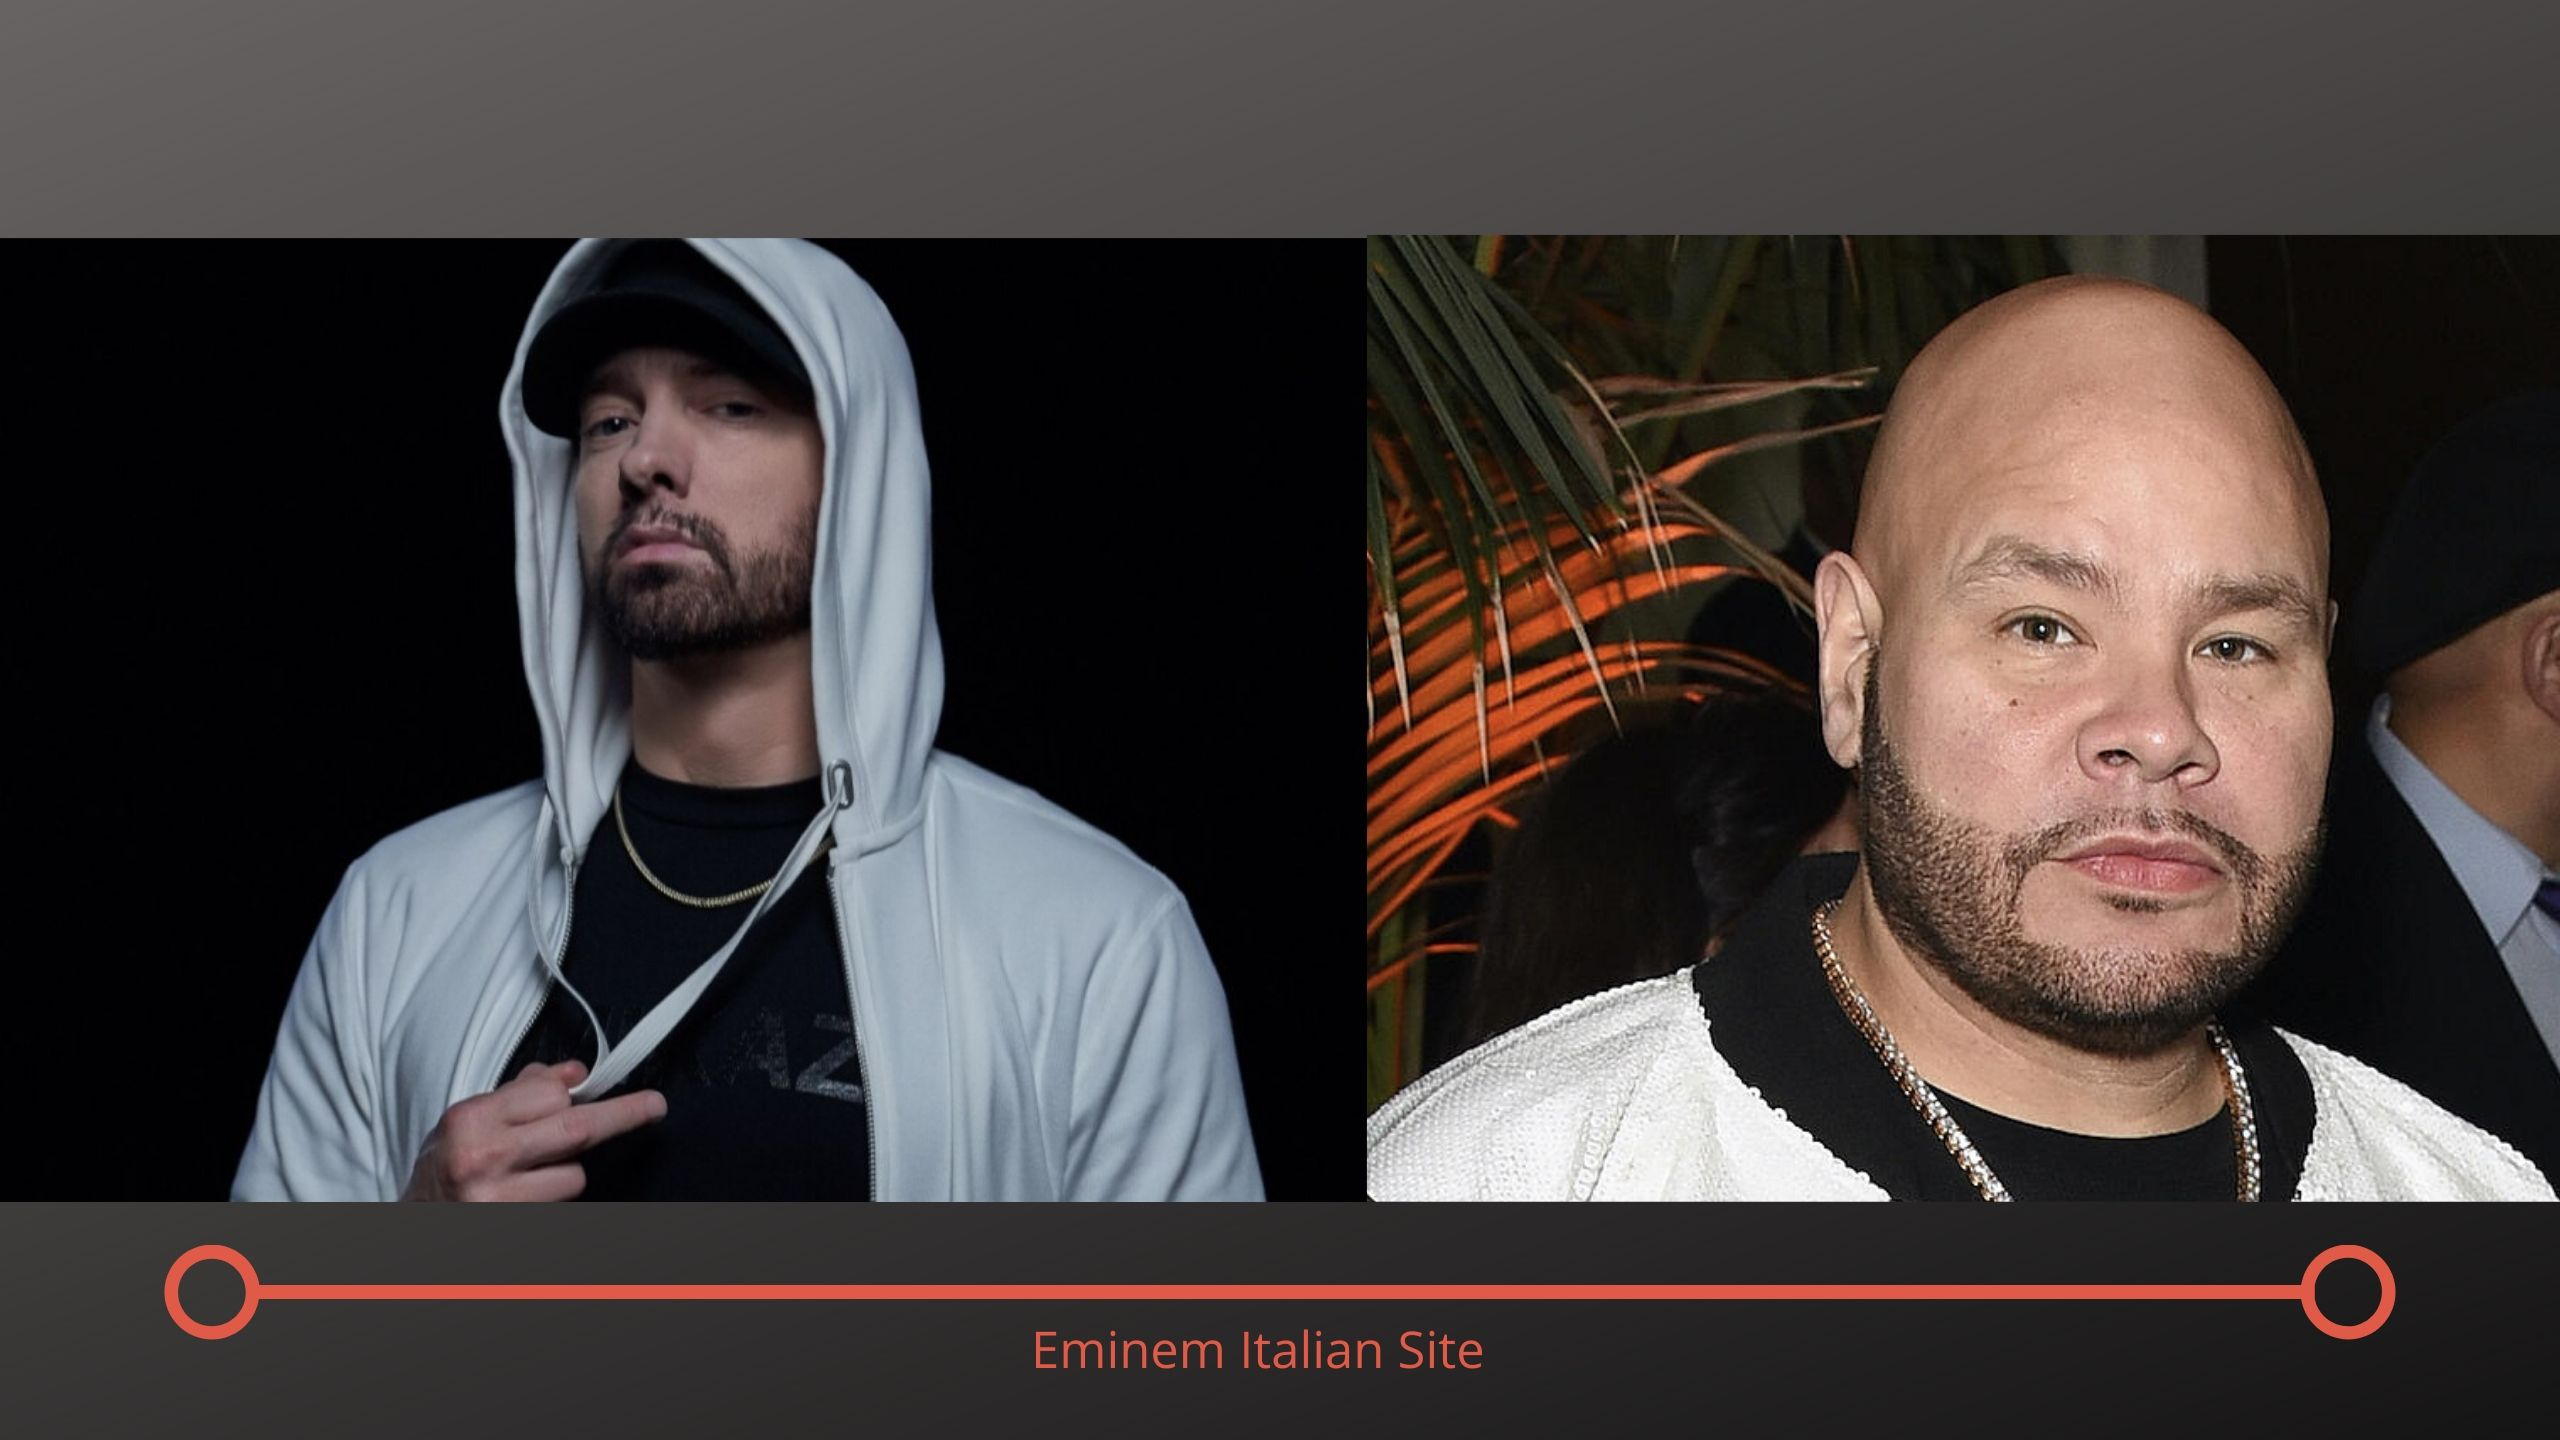 eminem fat joe lord above, eminem mary j blige lord above, eminem new song